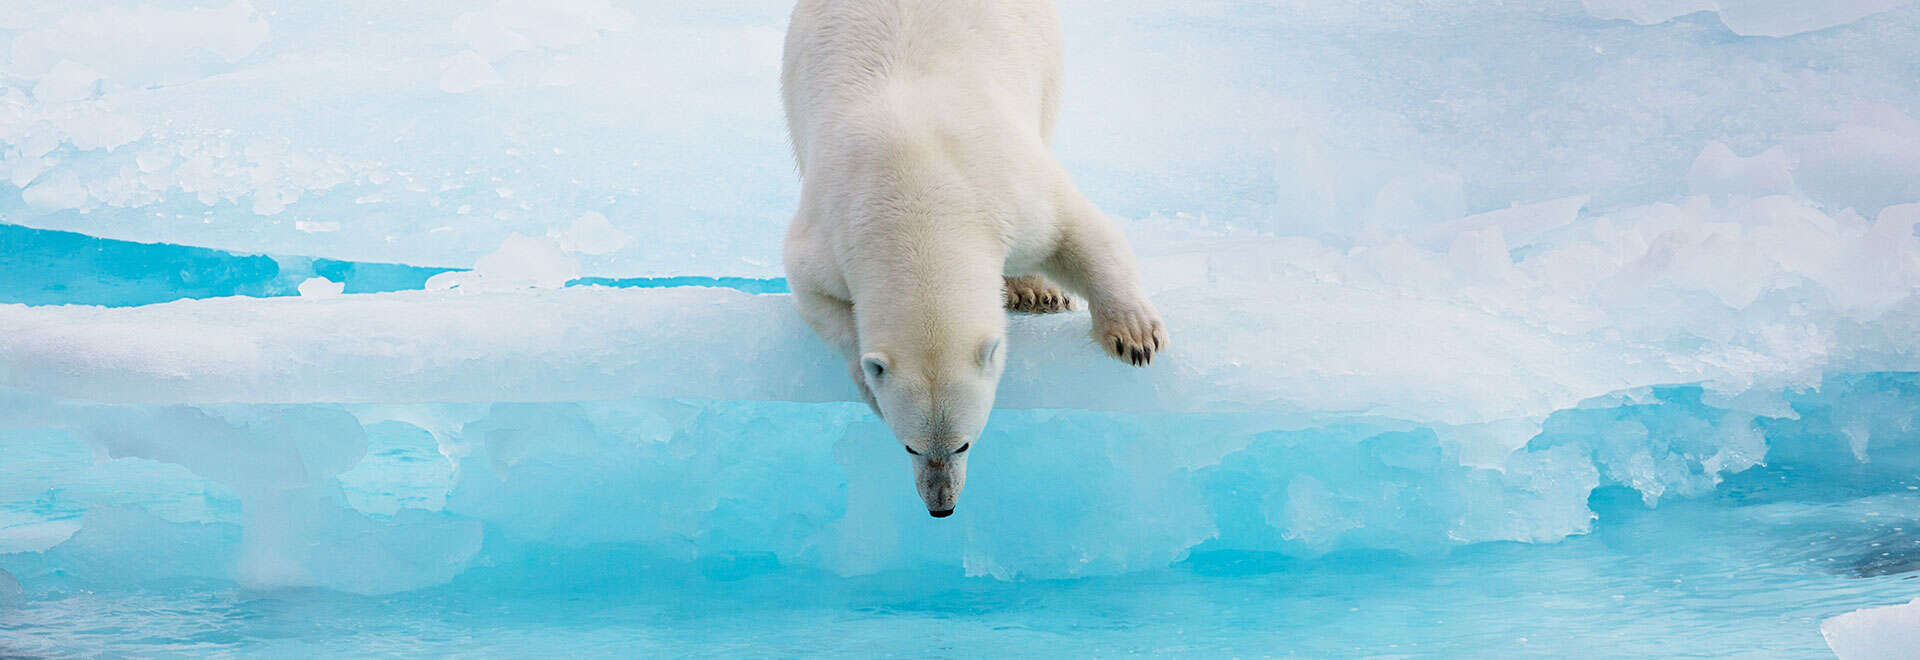 Arctic Cruise Adventure: In Search of the Polar Bear 2020